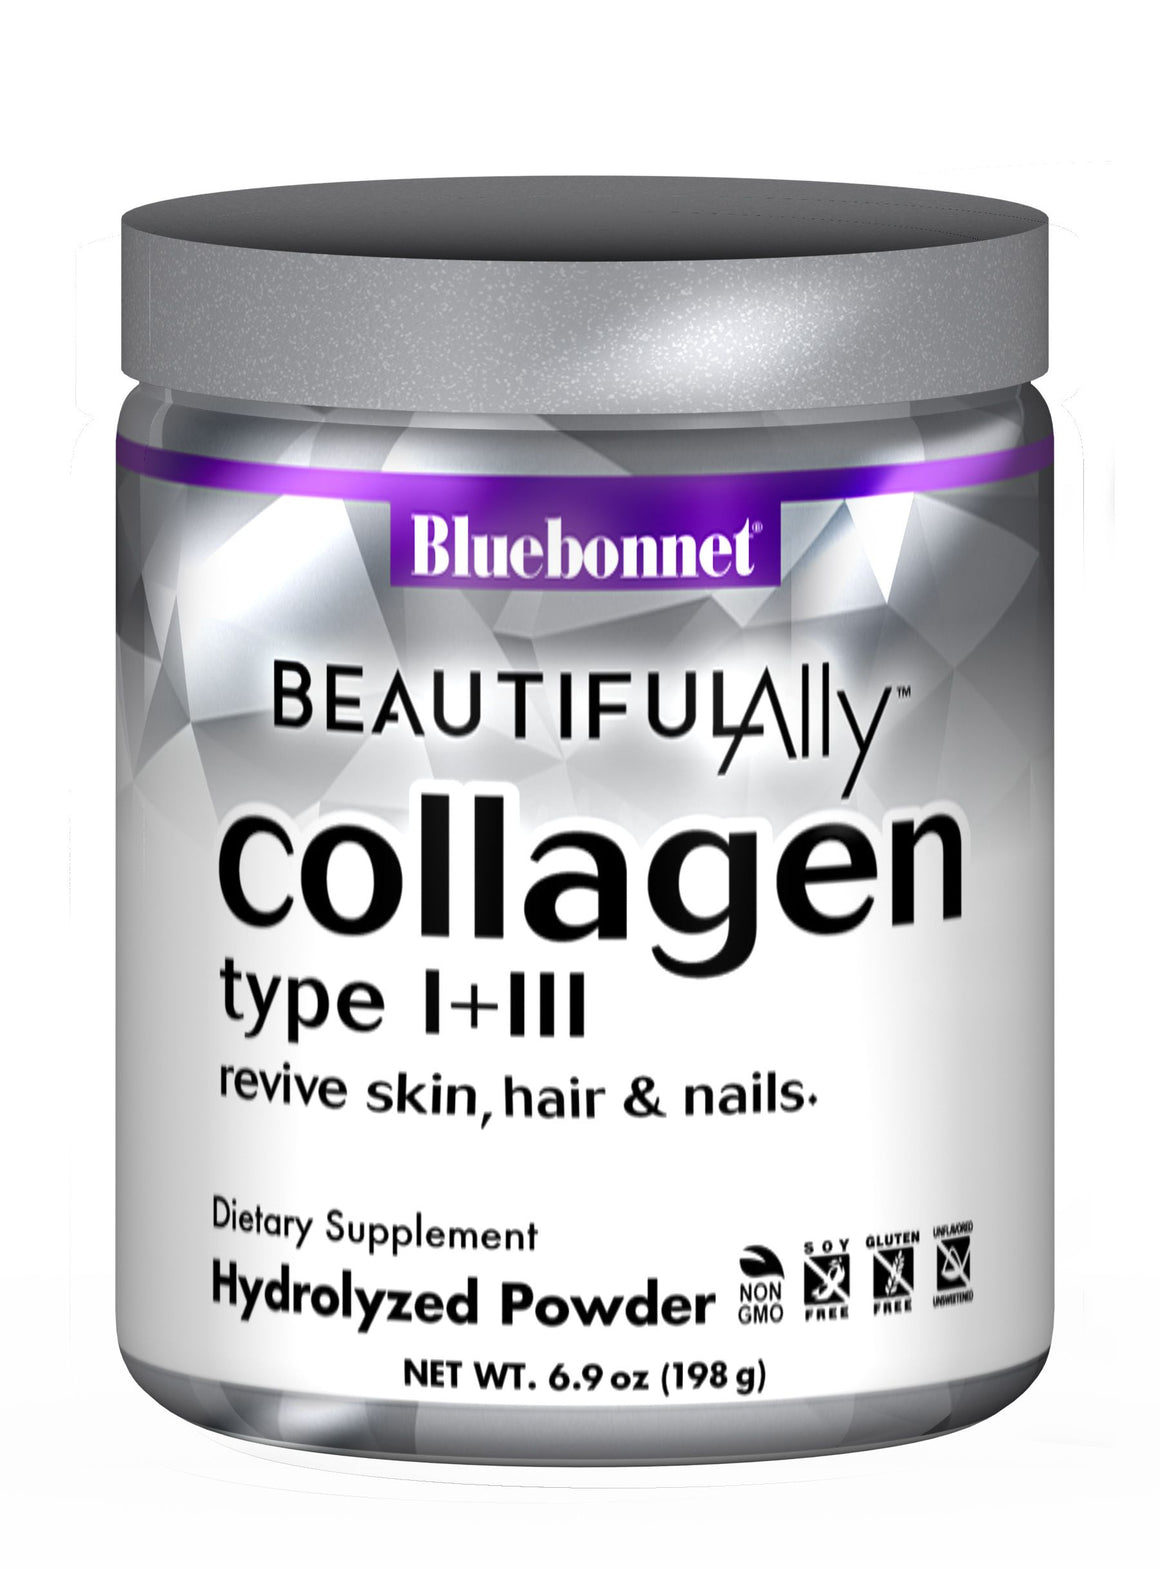 A jar of Bluebonnet BEAUTIFUL ALLY® COLLAGEN TYPE I + III POWDER